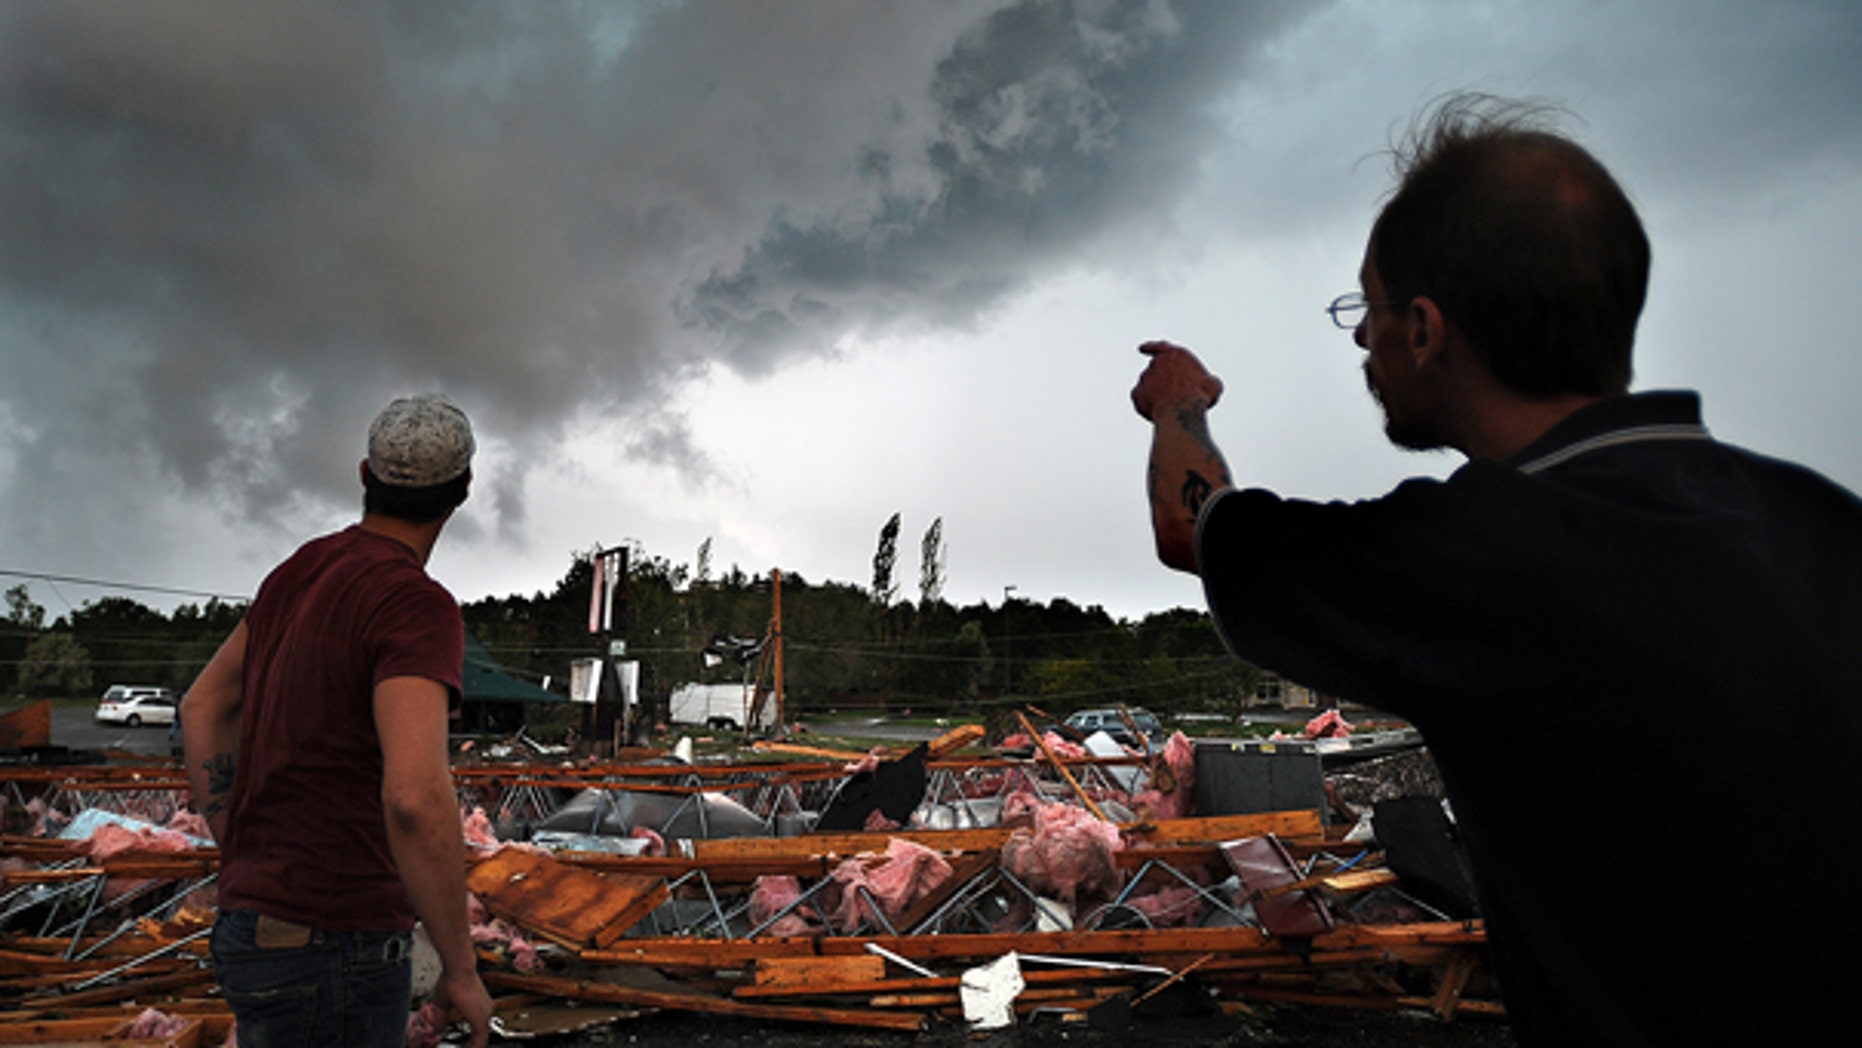 June 20: Main Street Casino staff members watch a second thunderstorm approach after they just survived a tornado in Billings, Mont. (AP)